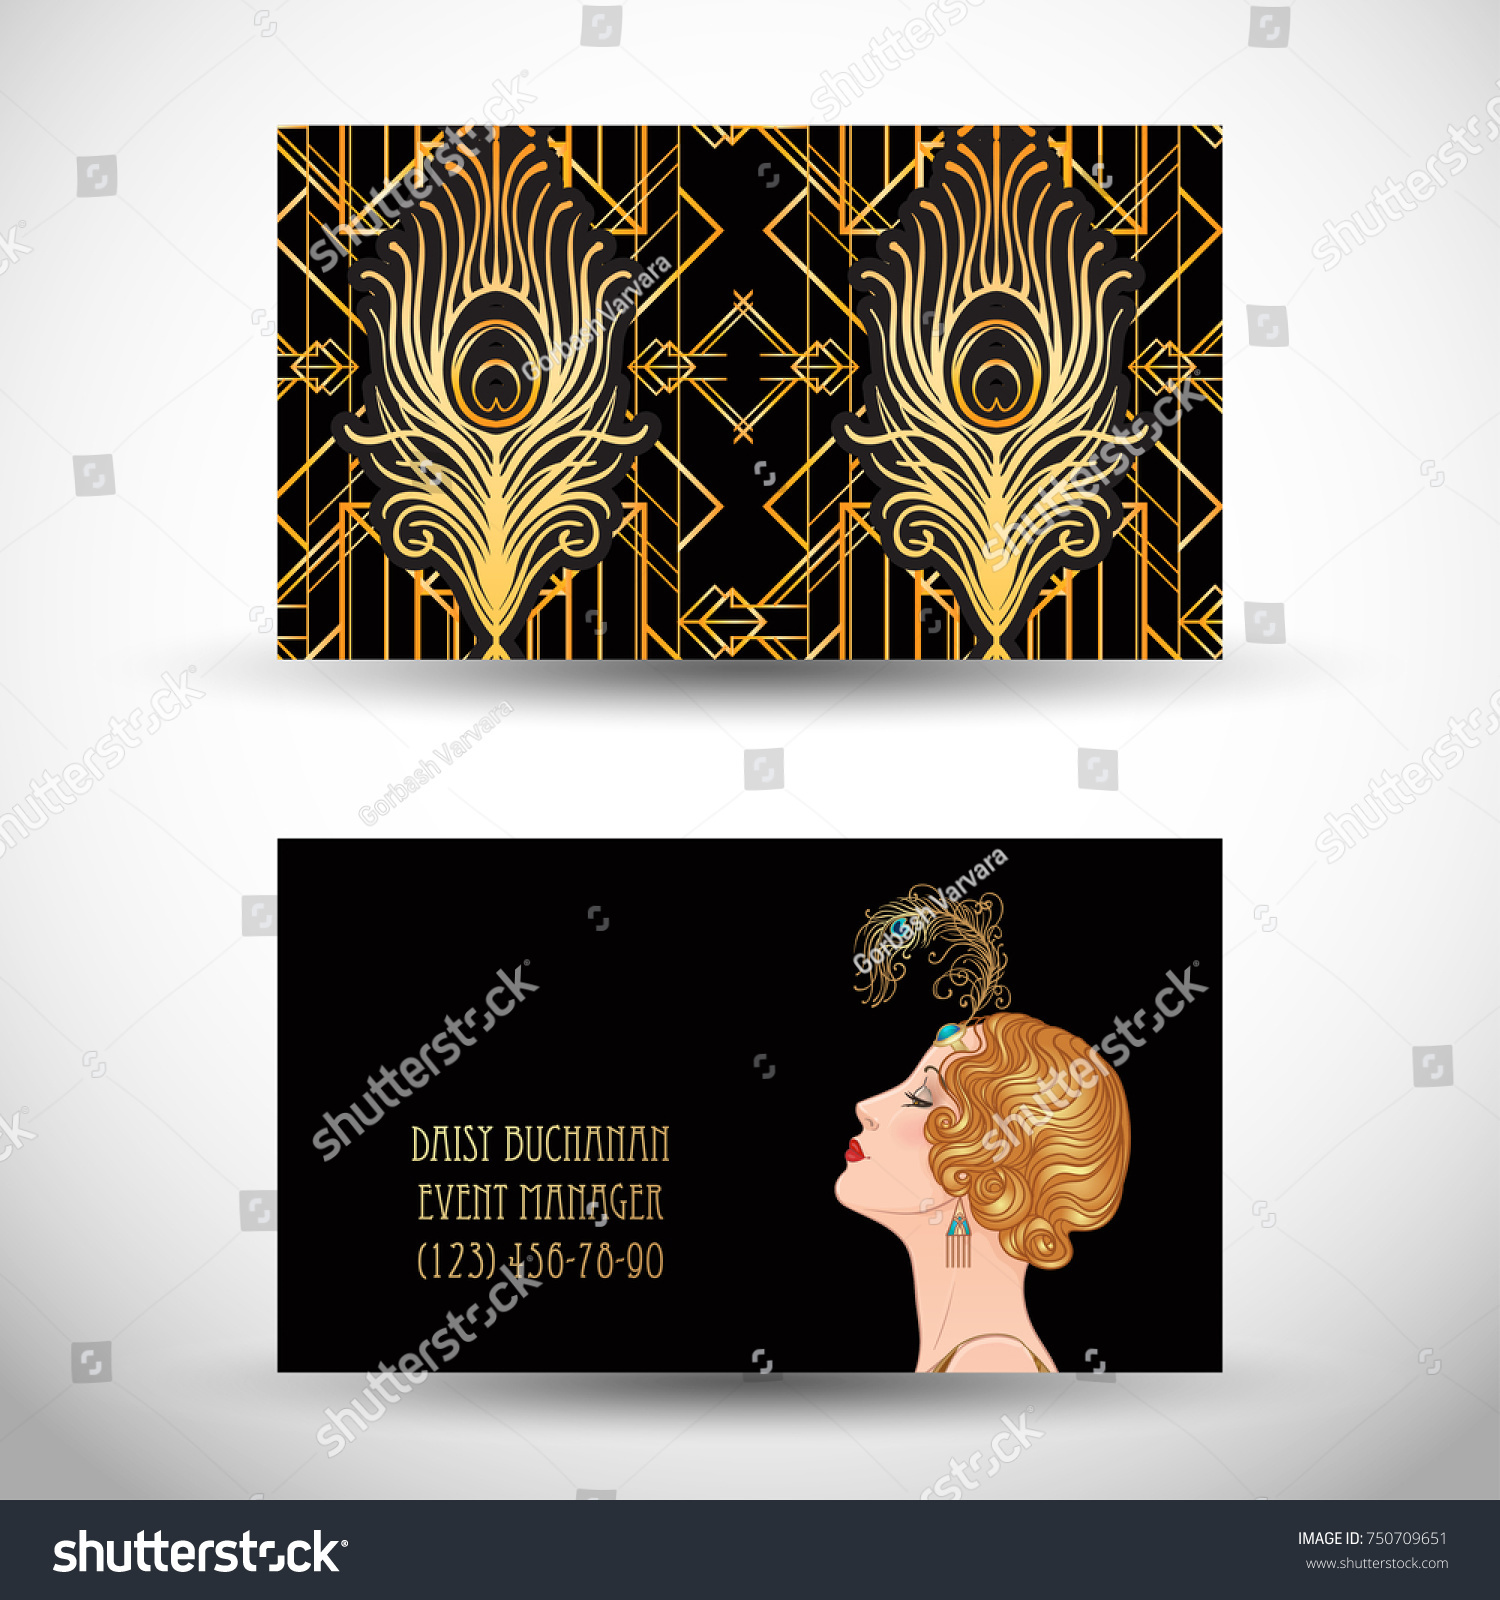 Art deco style business card sample stock vector royalty free art deco style business card sample text abstract vintage patterns and flapper girl colourmoves